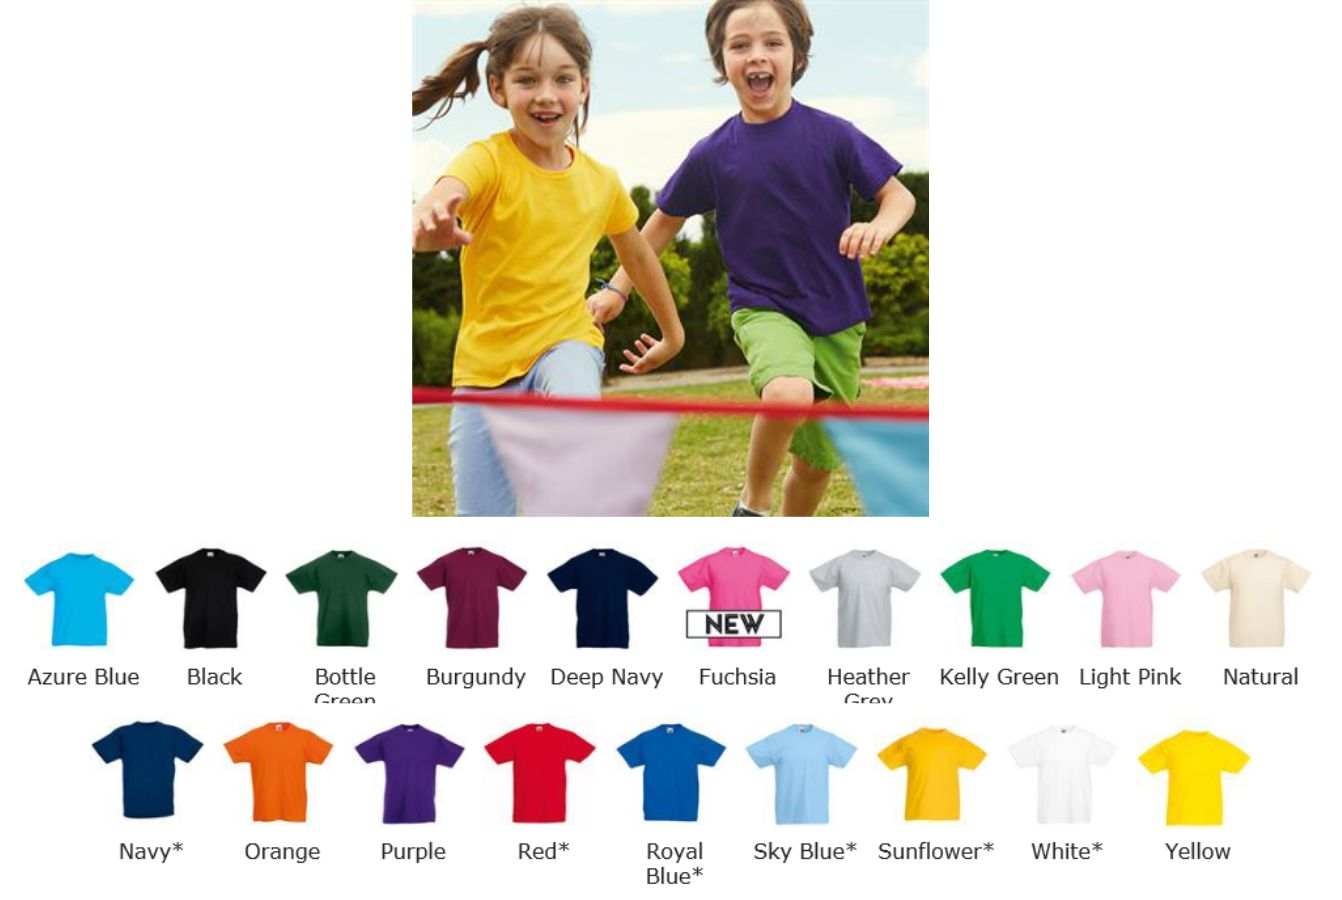 Fruit of the loom 61033 SS28B Childs Value Weight tee shirt